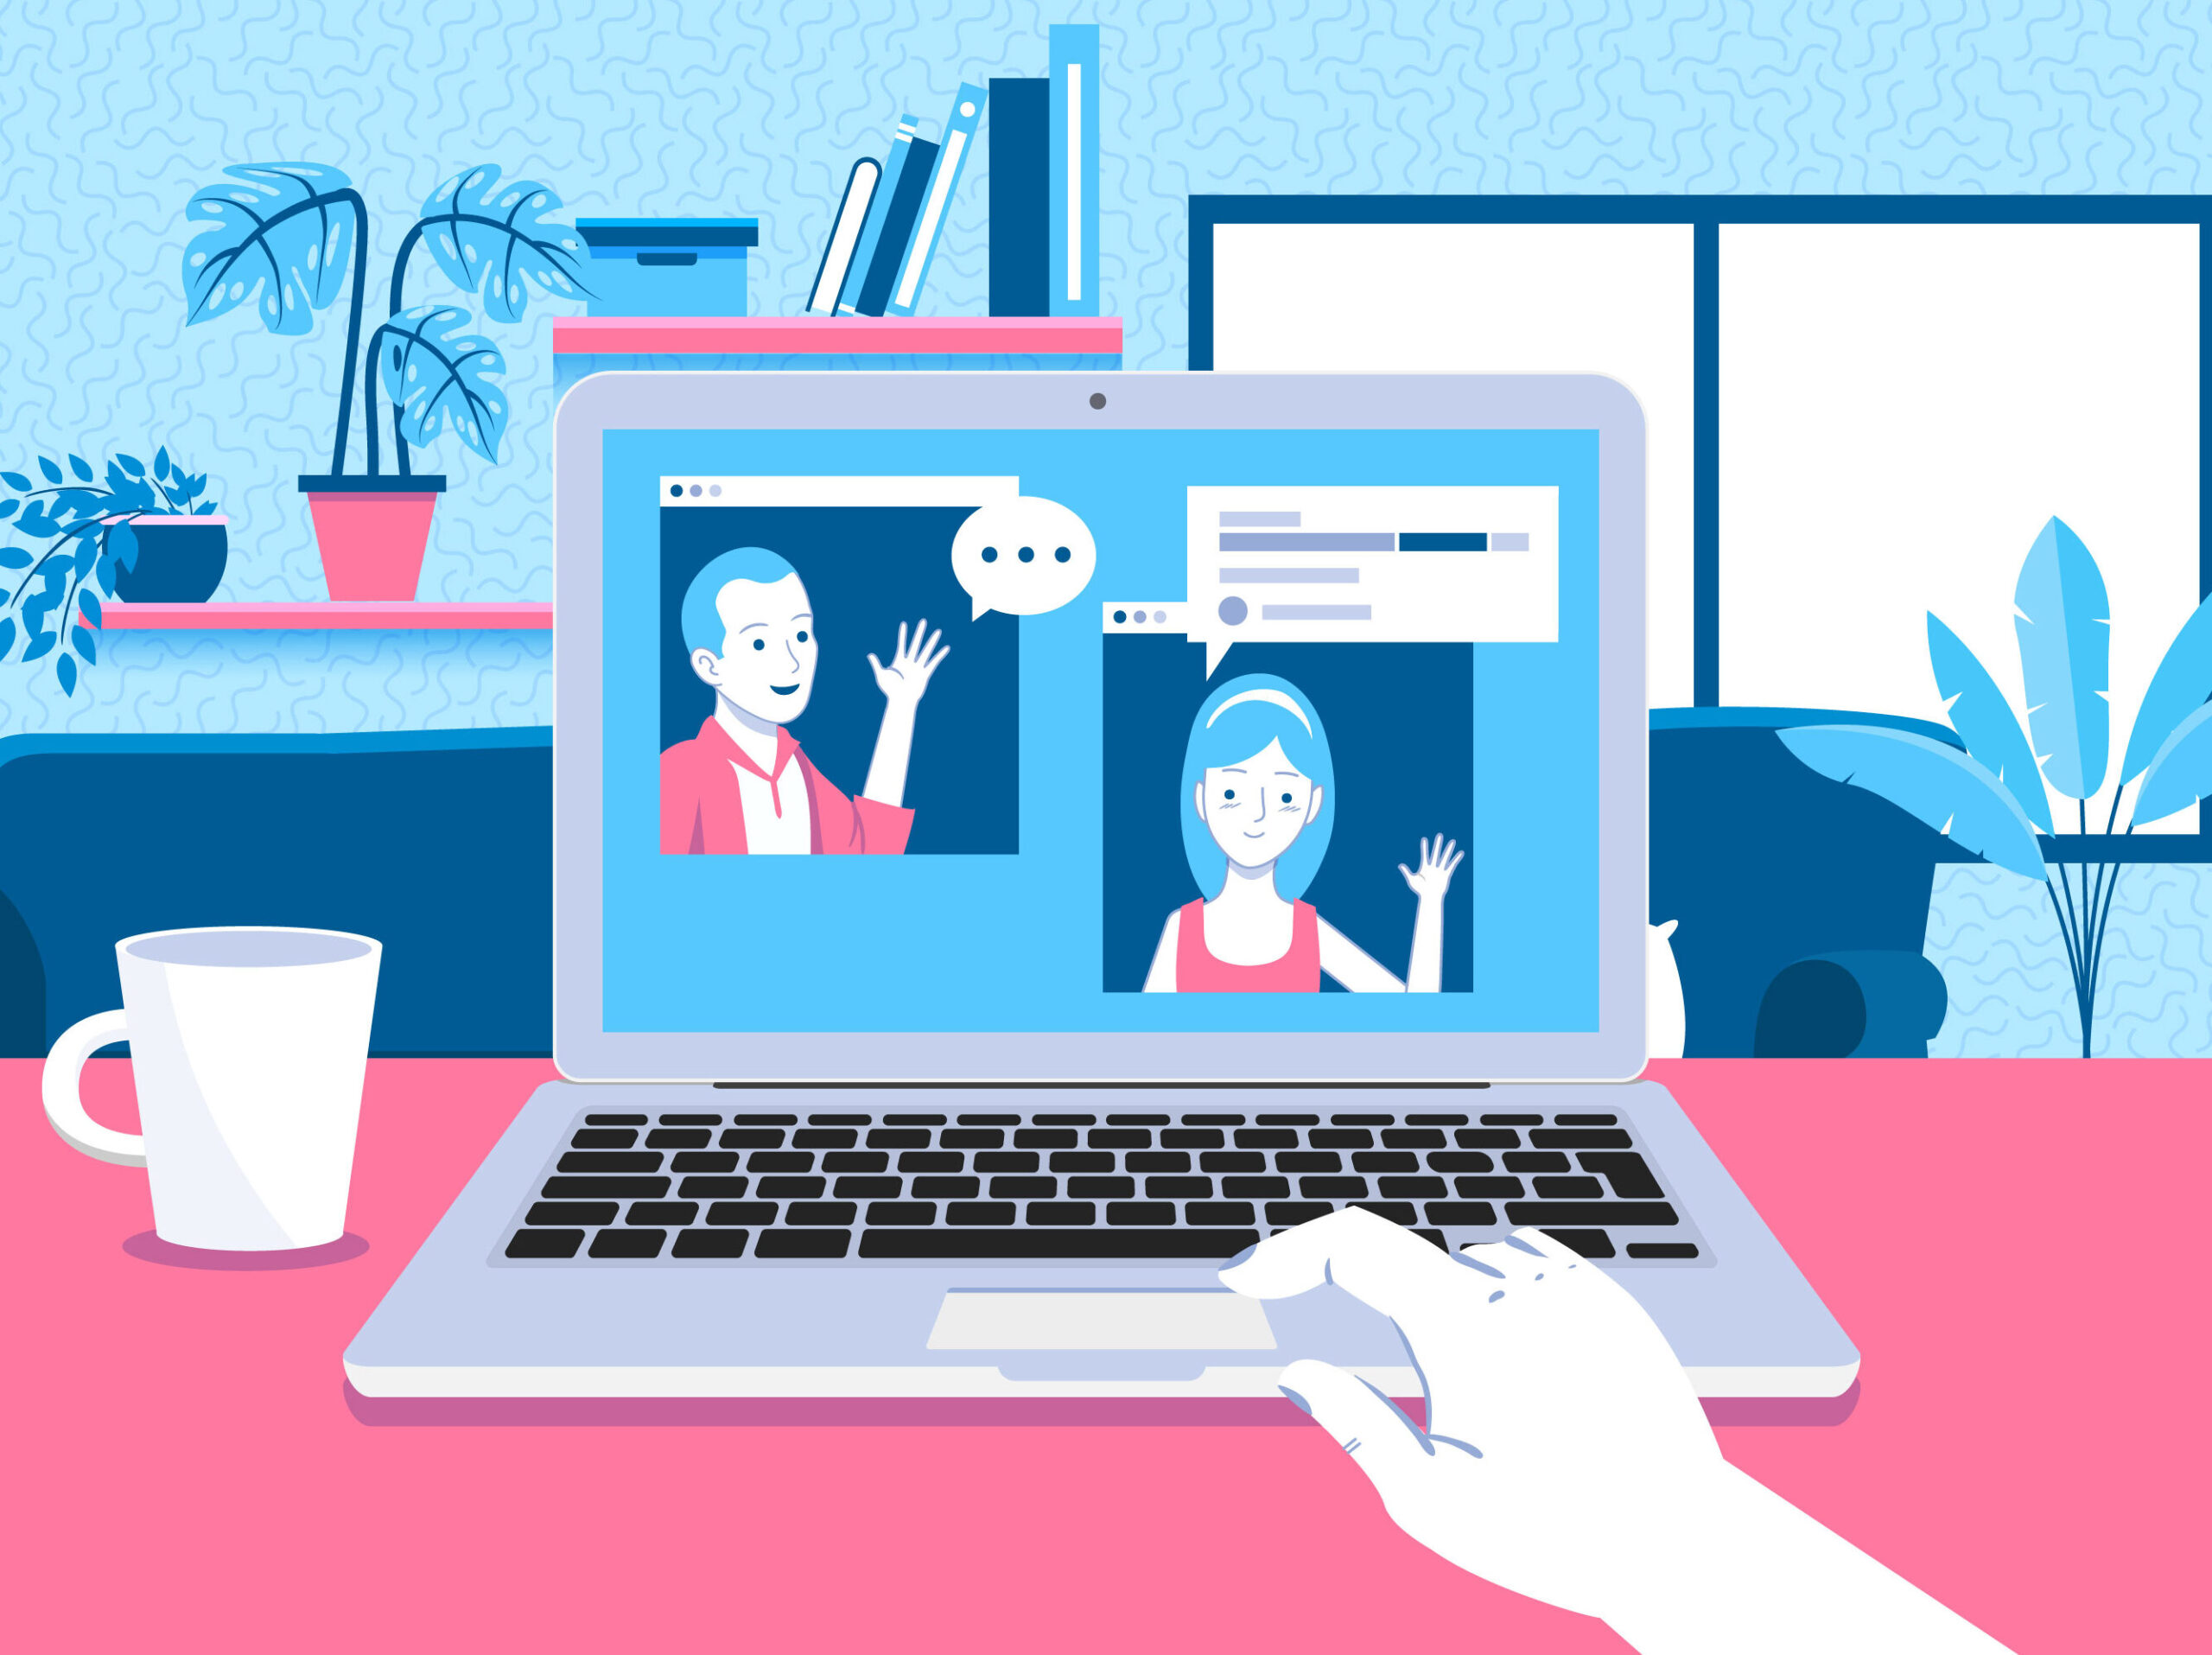 Remote work by the numbers: Latest research & stats on working from home